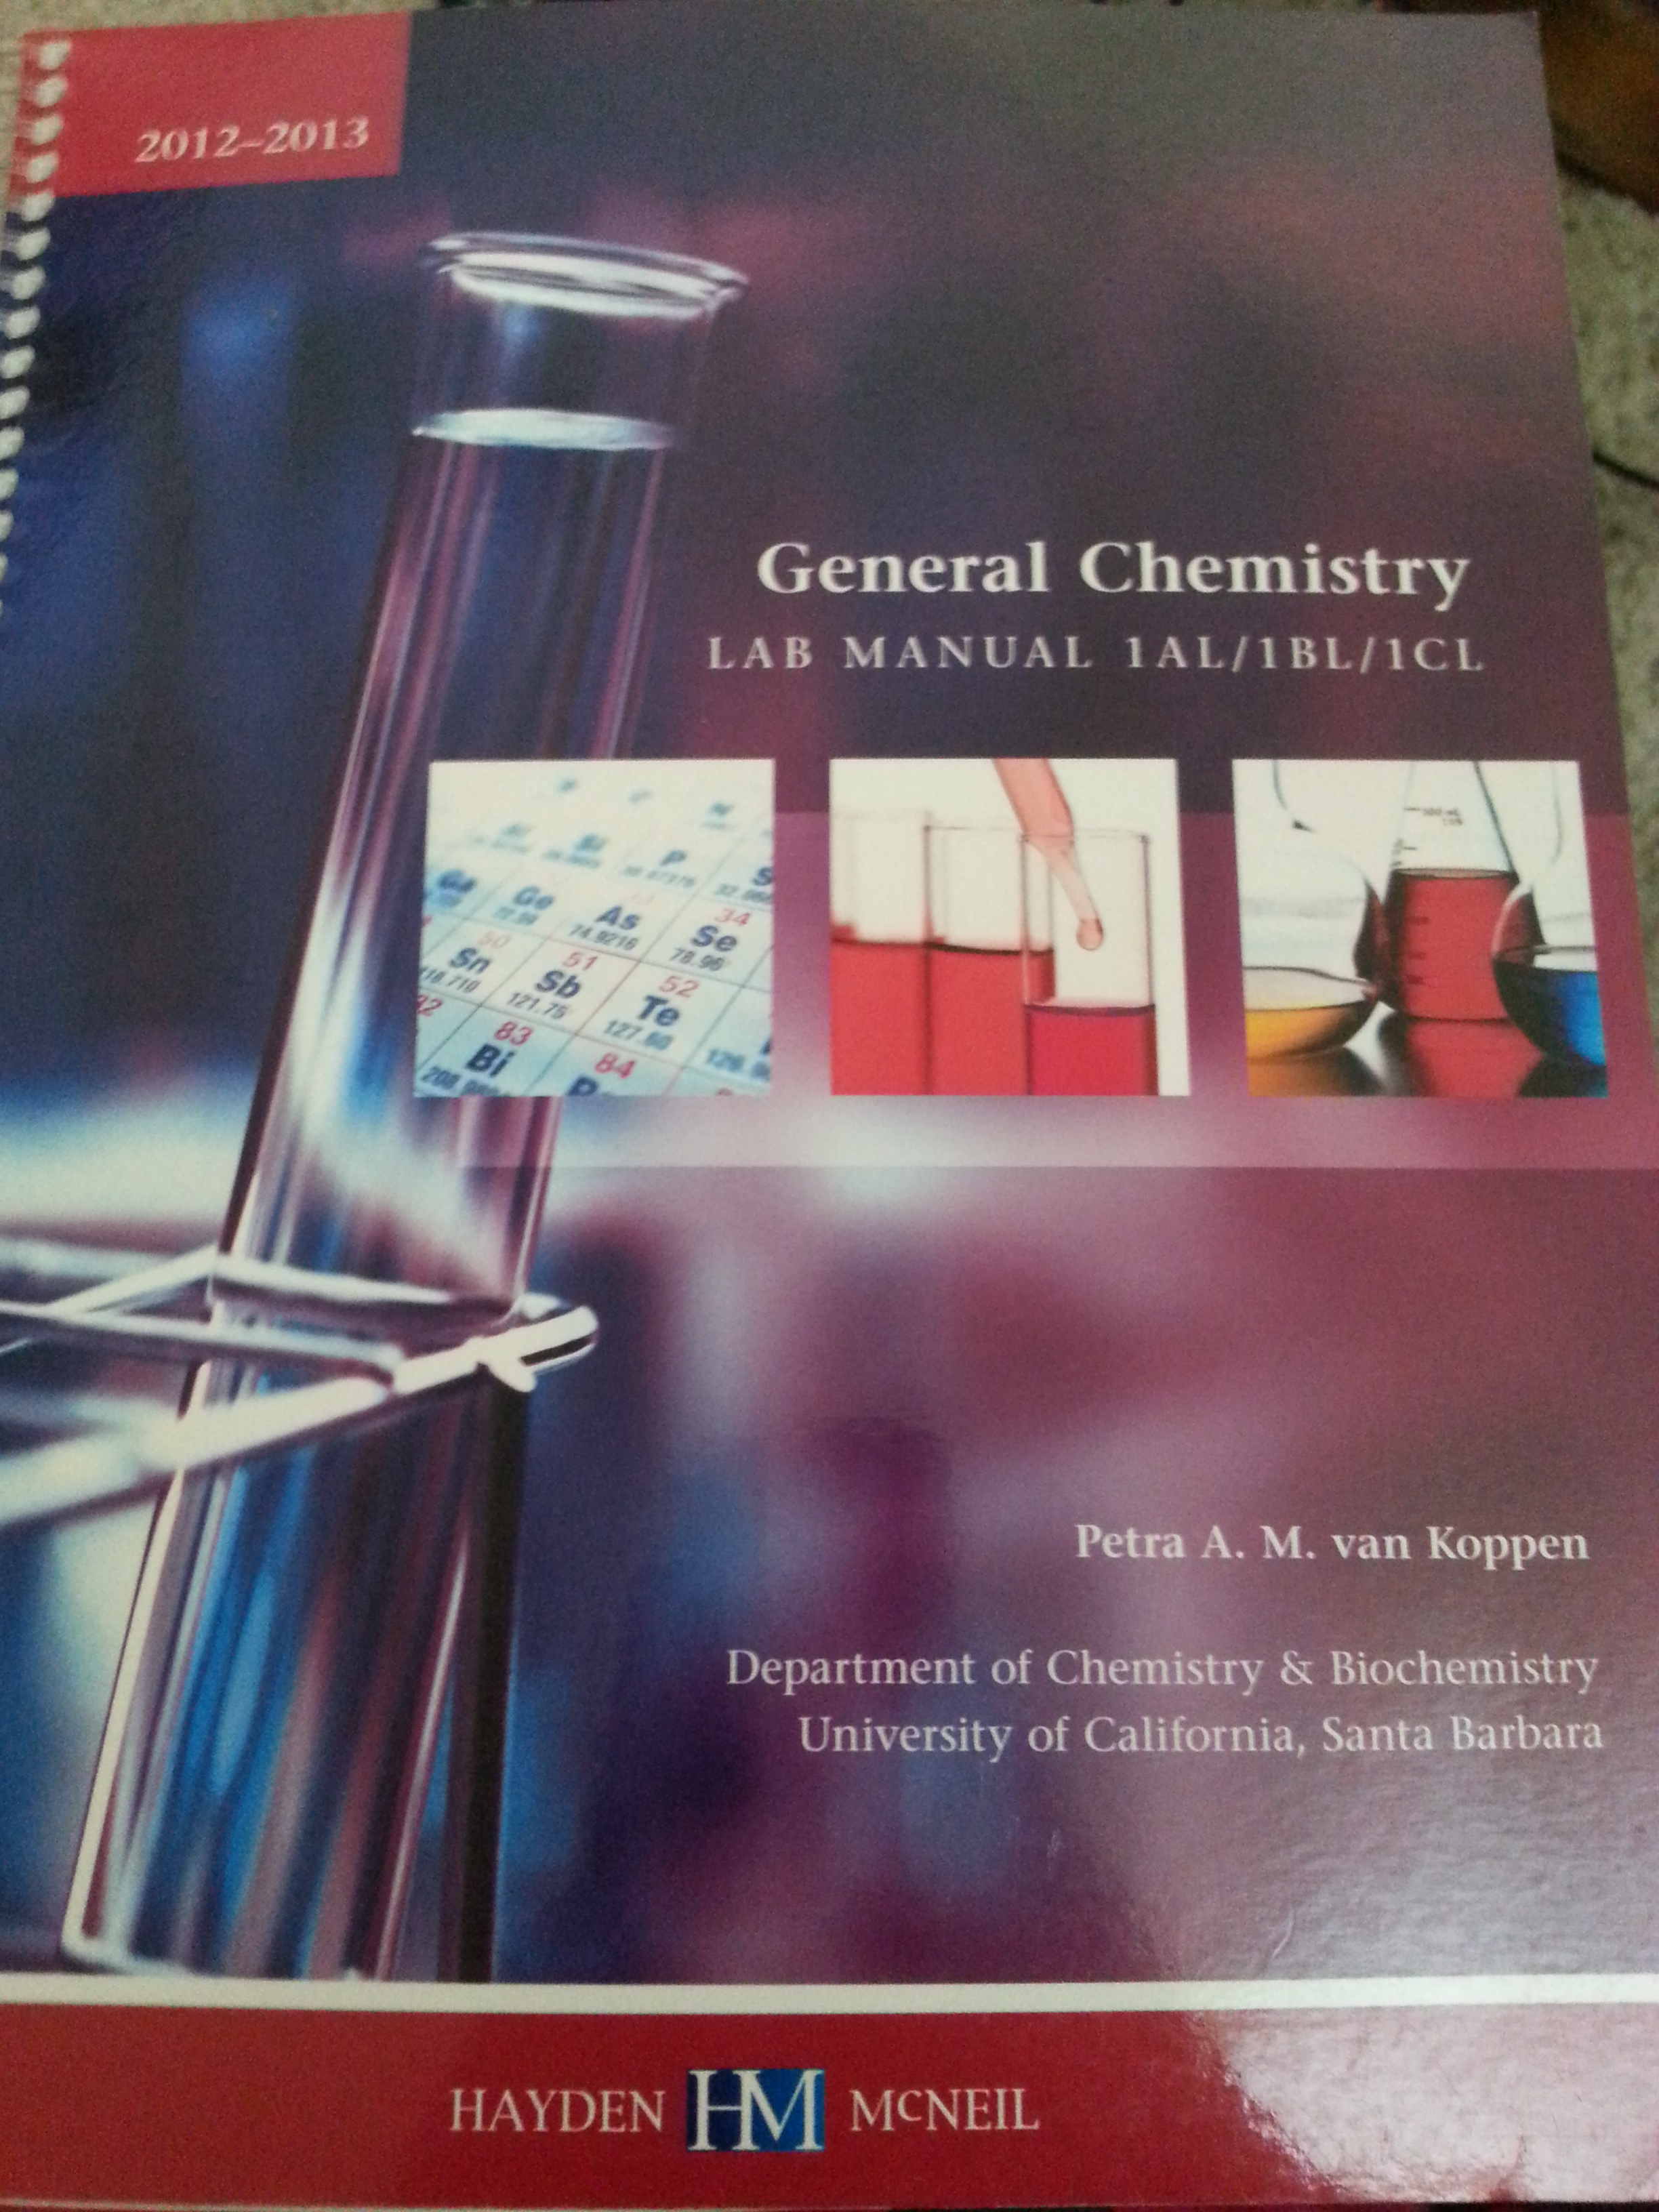 General Chemistry Lab Manual 1AL/1BL/1CL | Gaucho Books